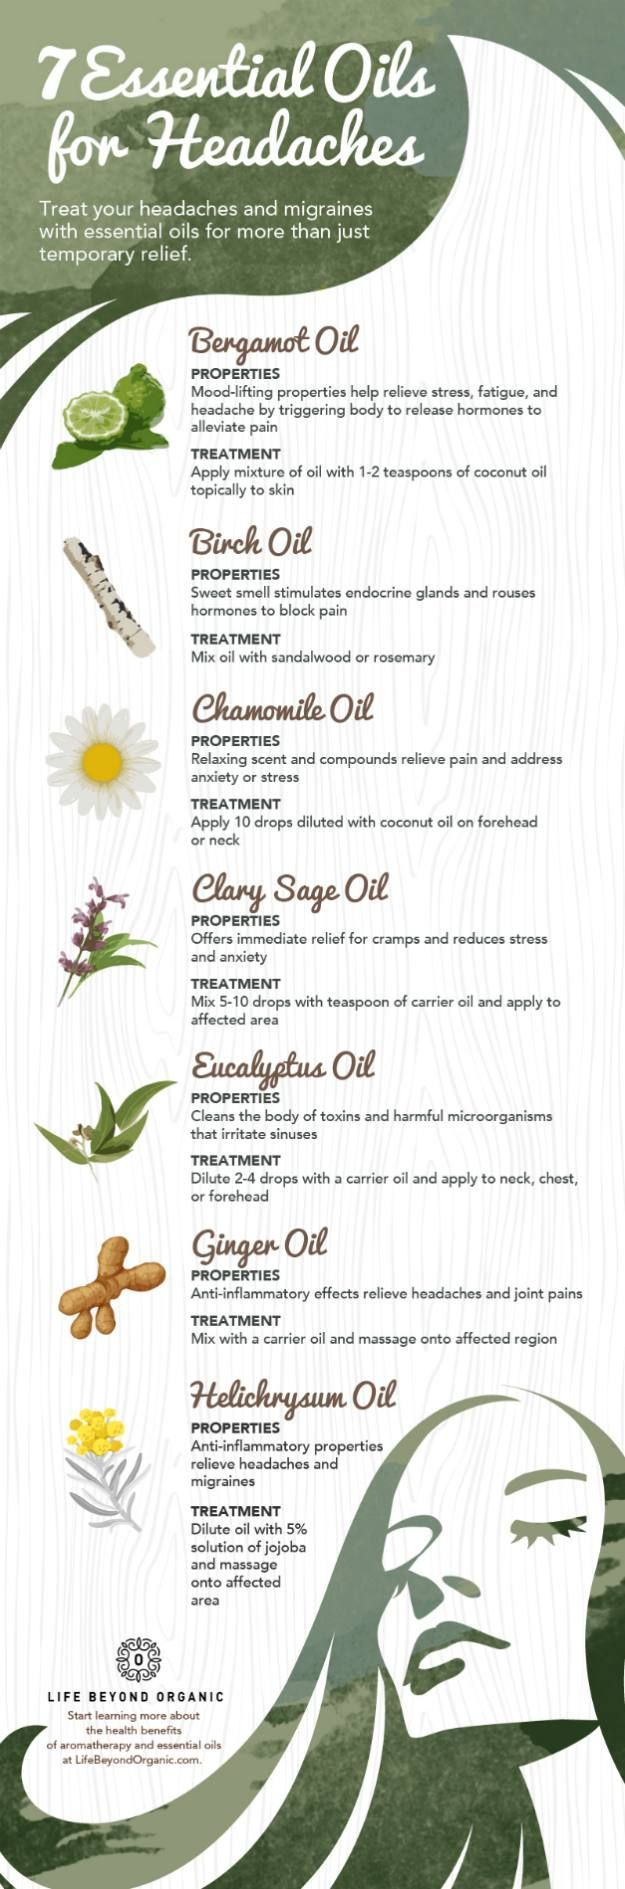 infographic | 7 essential oils for headaches #headacheinfographic